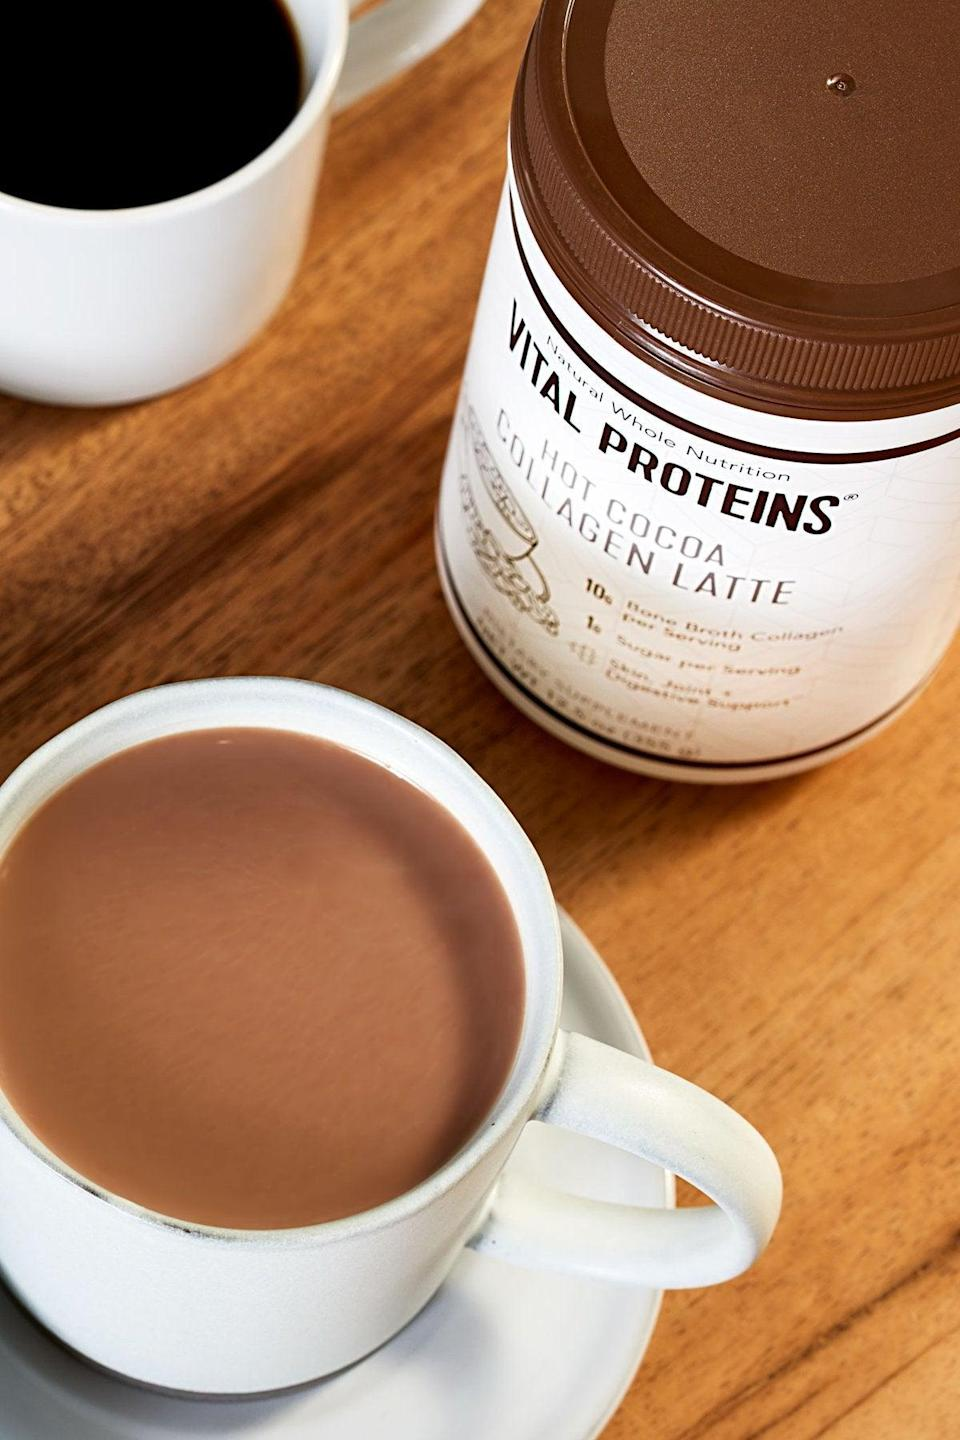 """<h2>Vital Proteins Hot Cocoa Collagen Latte</h2><br>""""I'm picky with powder supplements. I'm not a fan of most flavors or textures, and I usually end up falling off the wagon. But this <a href=""""https://www.refinery29.com/en-us/collagen-supplements-benefits-skin"""" rel=""""nofollow noopener"""" target=""""_blank"""" data-ylk=""""slk:collagen powder"""" class=""""link rapid-noclick-resp"""">collagen powder</a> is different — hot chocolate is one of my many guilty pleasures, and this """"latte"""" has been recently replacing my favorite cup of Swiss Miss as a nighttime snack. I'm officially hooked!"""" <em>— EG</em><br><br><strong>Vital Proteins</strong> Hot Cocoa Collagen Latte, $, available at <a href=""""https://go.skimresources.com/?id=30283X879131&url=https%3A%2F%2Fwww.vitalproteins.com%2Fproducts%2Fcollagen-latte-hot-cocoa"""" rel=""""nofollow noopener"""" target=""""_blank"""" data-ylk=""""slk:Vital Proteins"""" class=""""link rapid-noclick-resp"""">Vital Proteins</a>"""